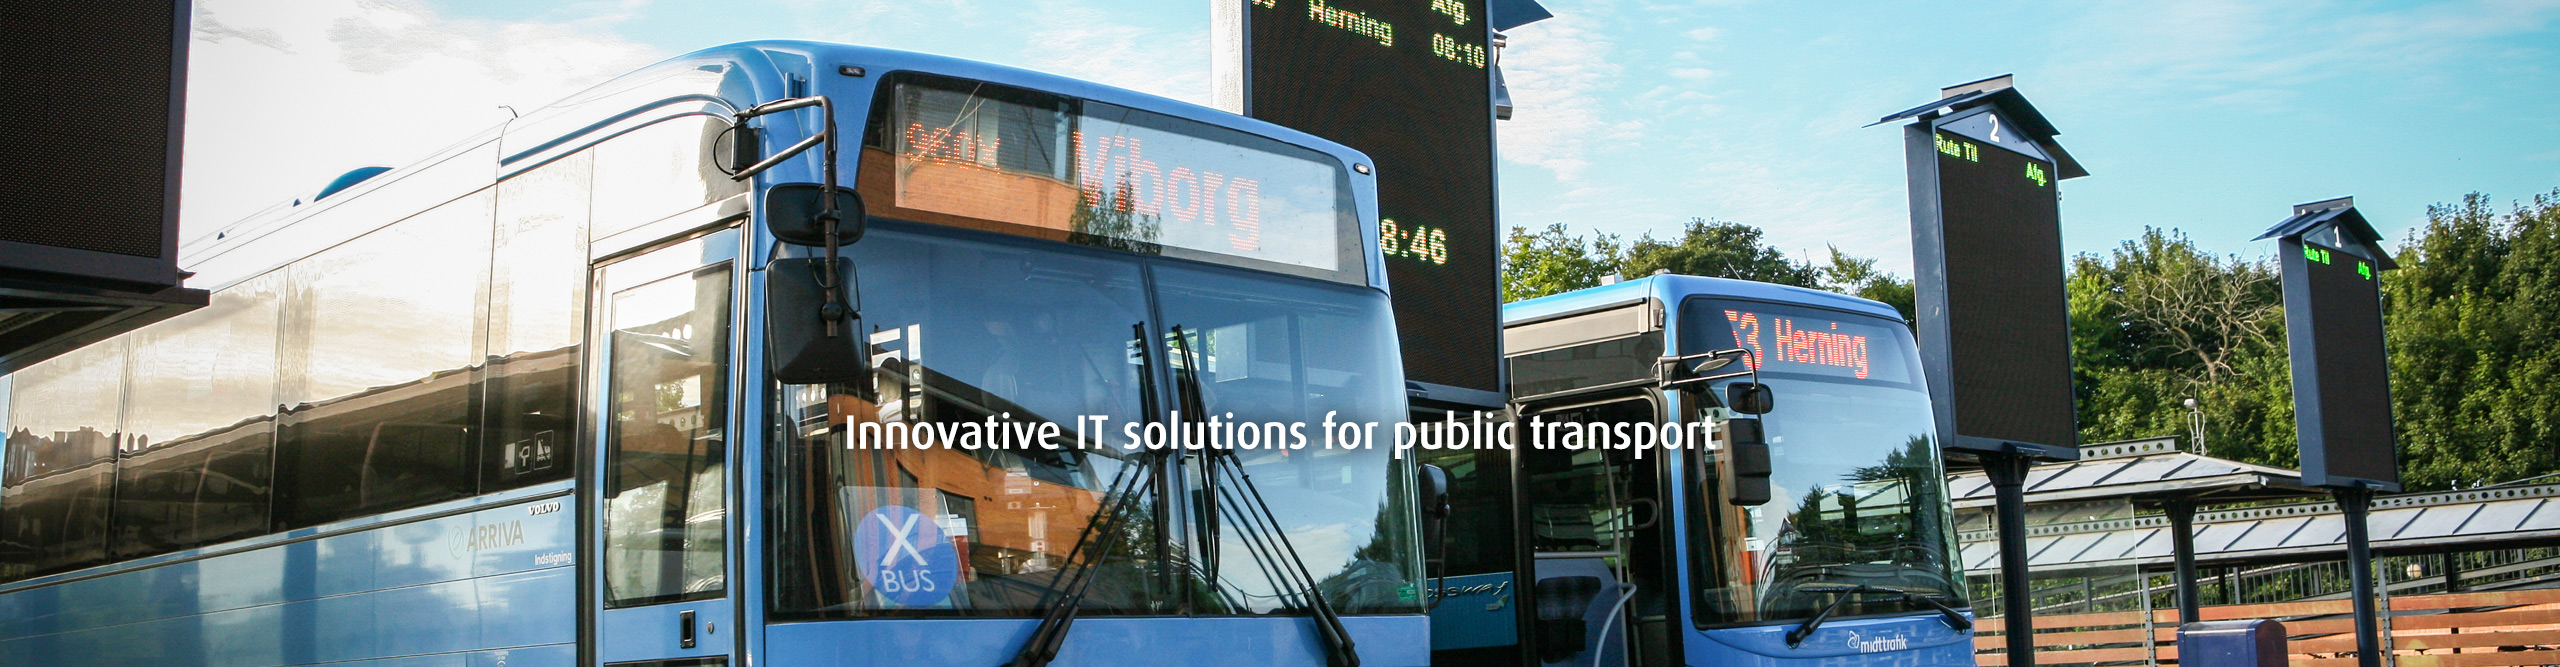 Innovative IT solutions for public transport